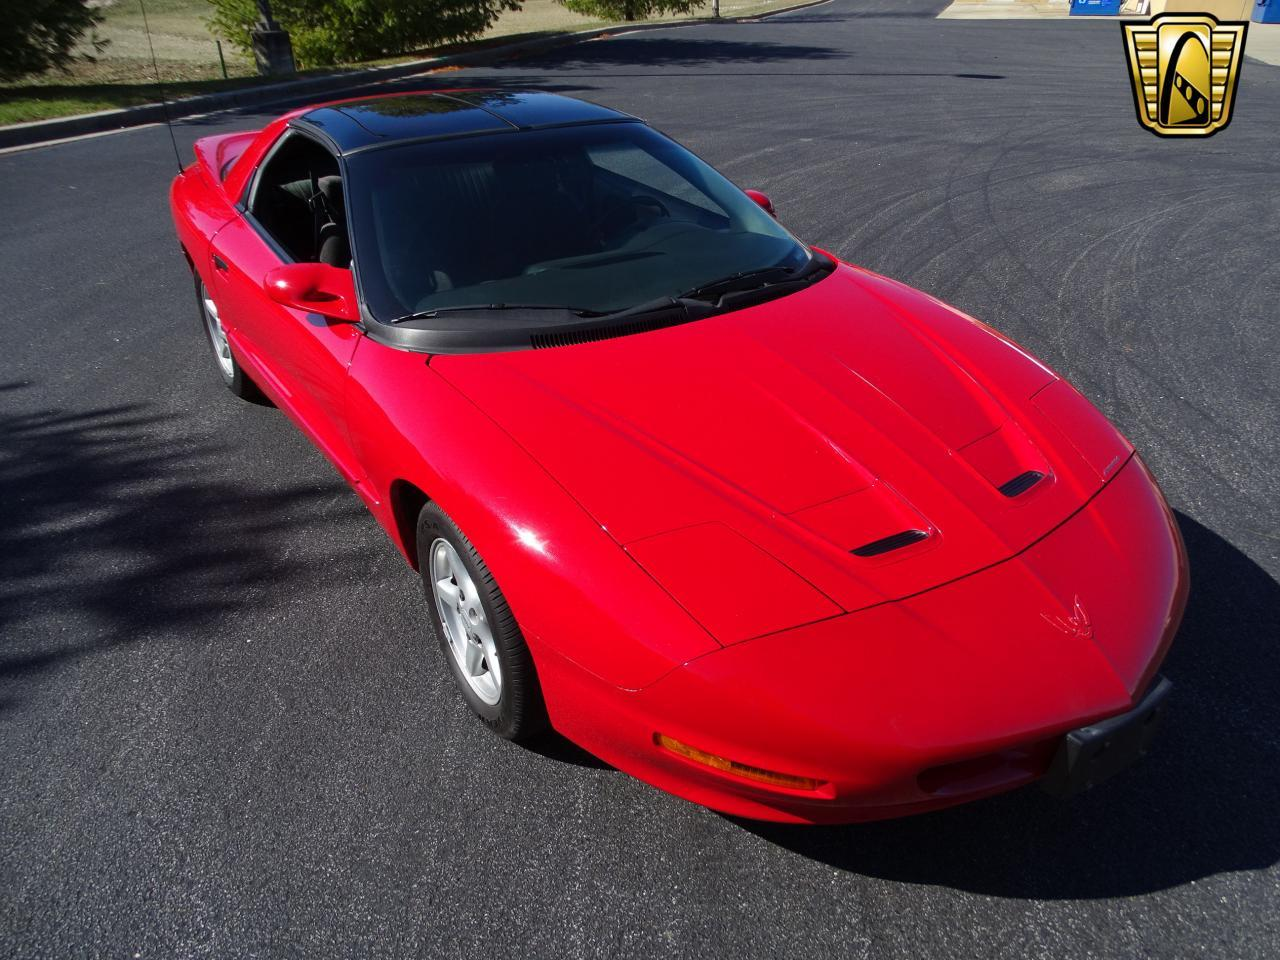 Large Picture of 1996 Firebird located in O'Fallon Illinois - $8,995.00 Offered by Gateway Classic Cars - St. Louis - MZF9